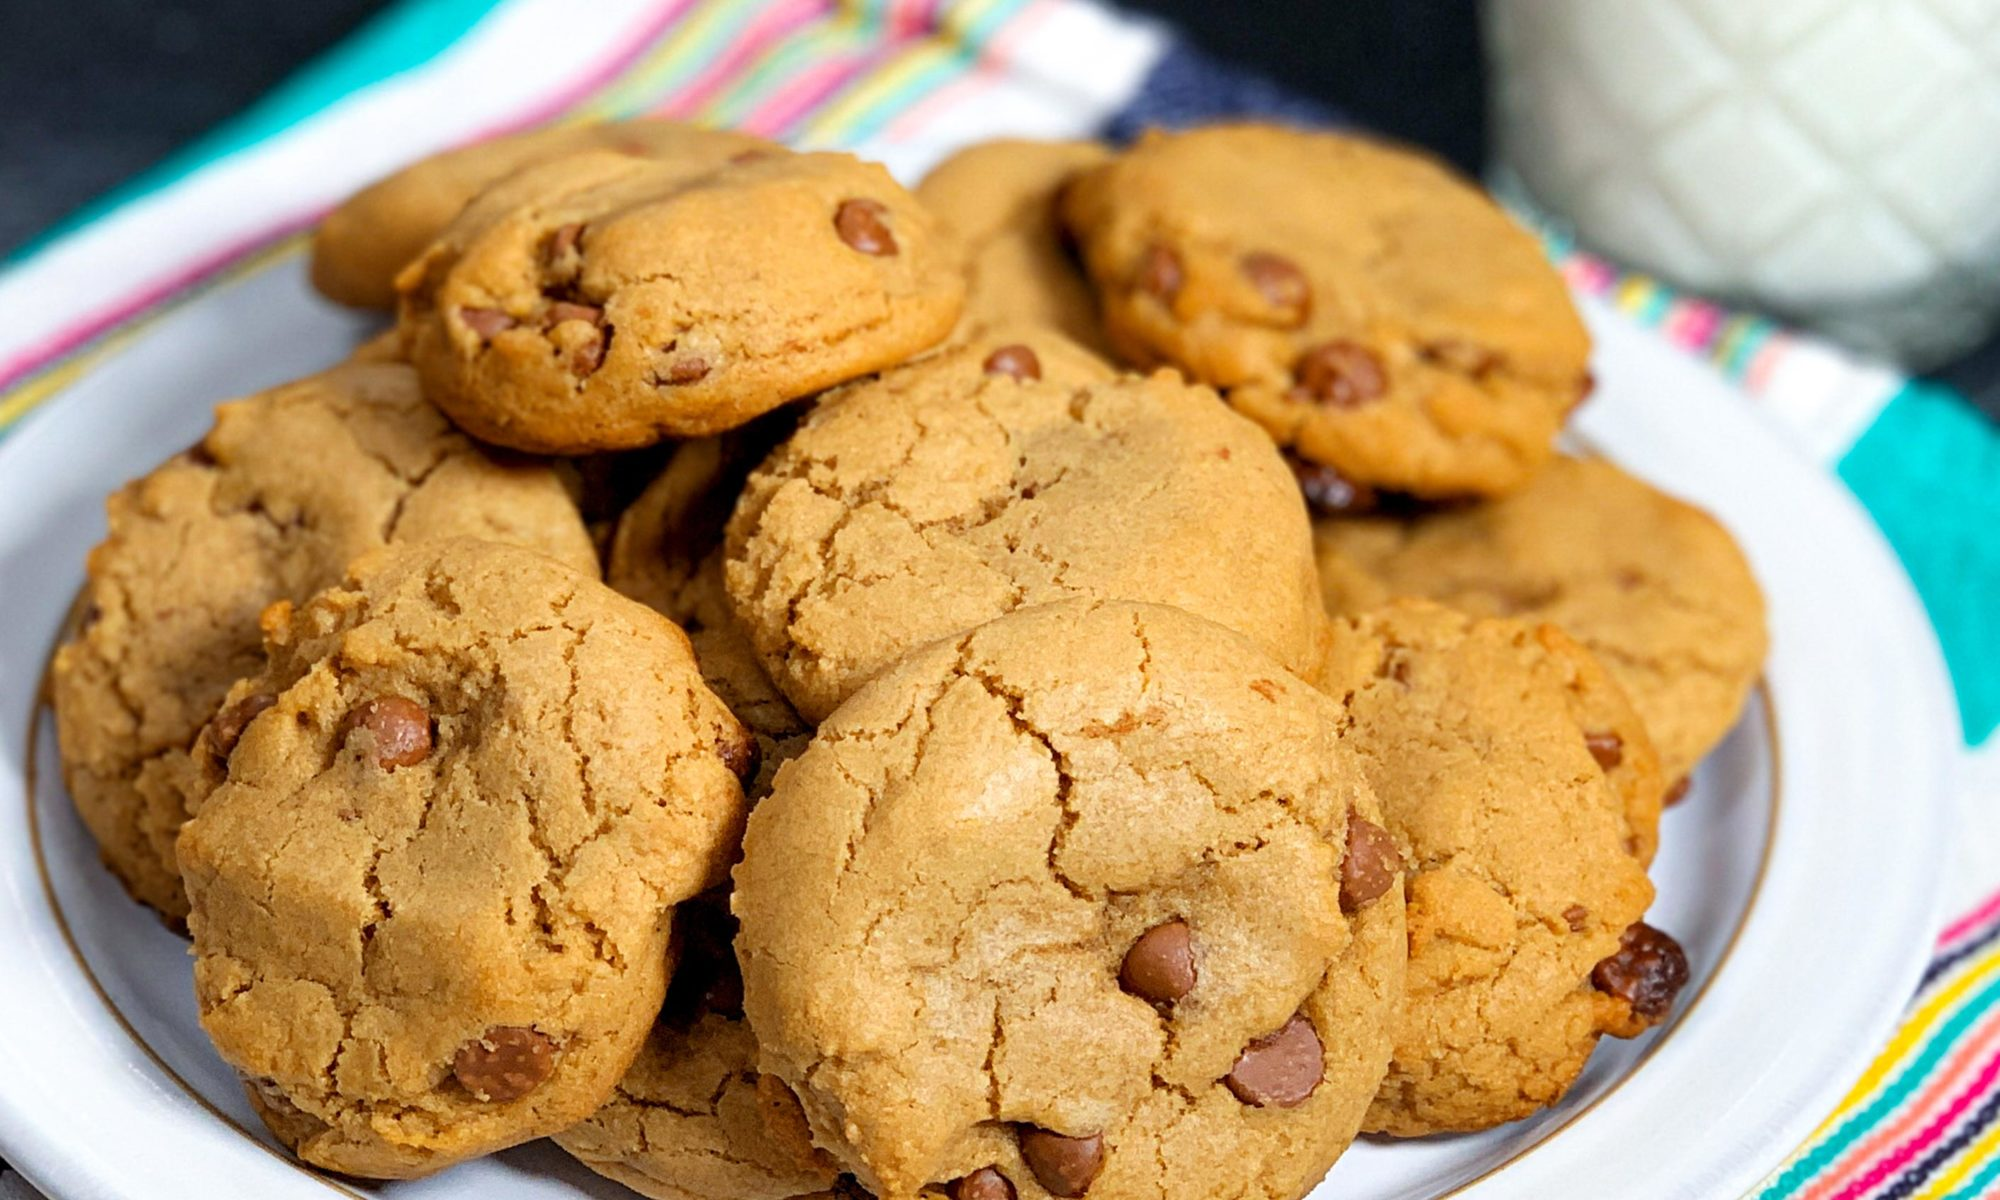 Close up of plate of cookies with glass of milk in the background